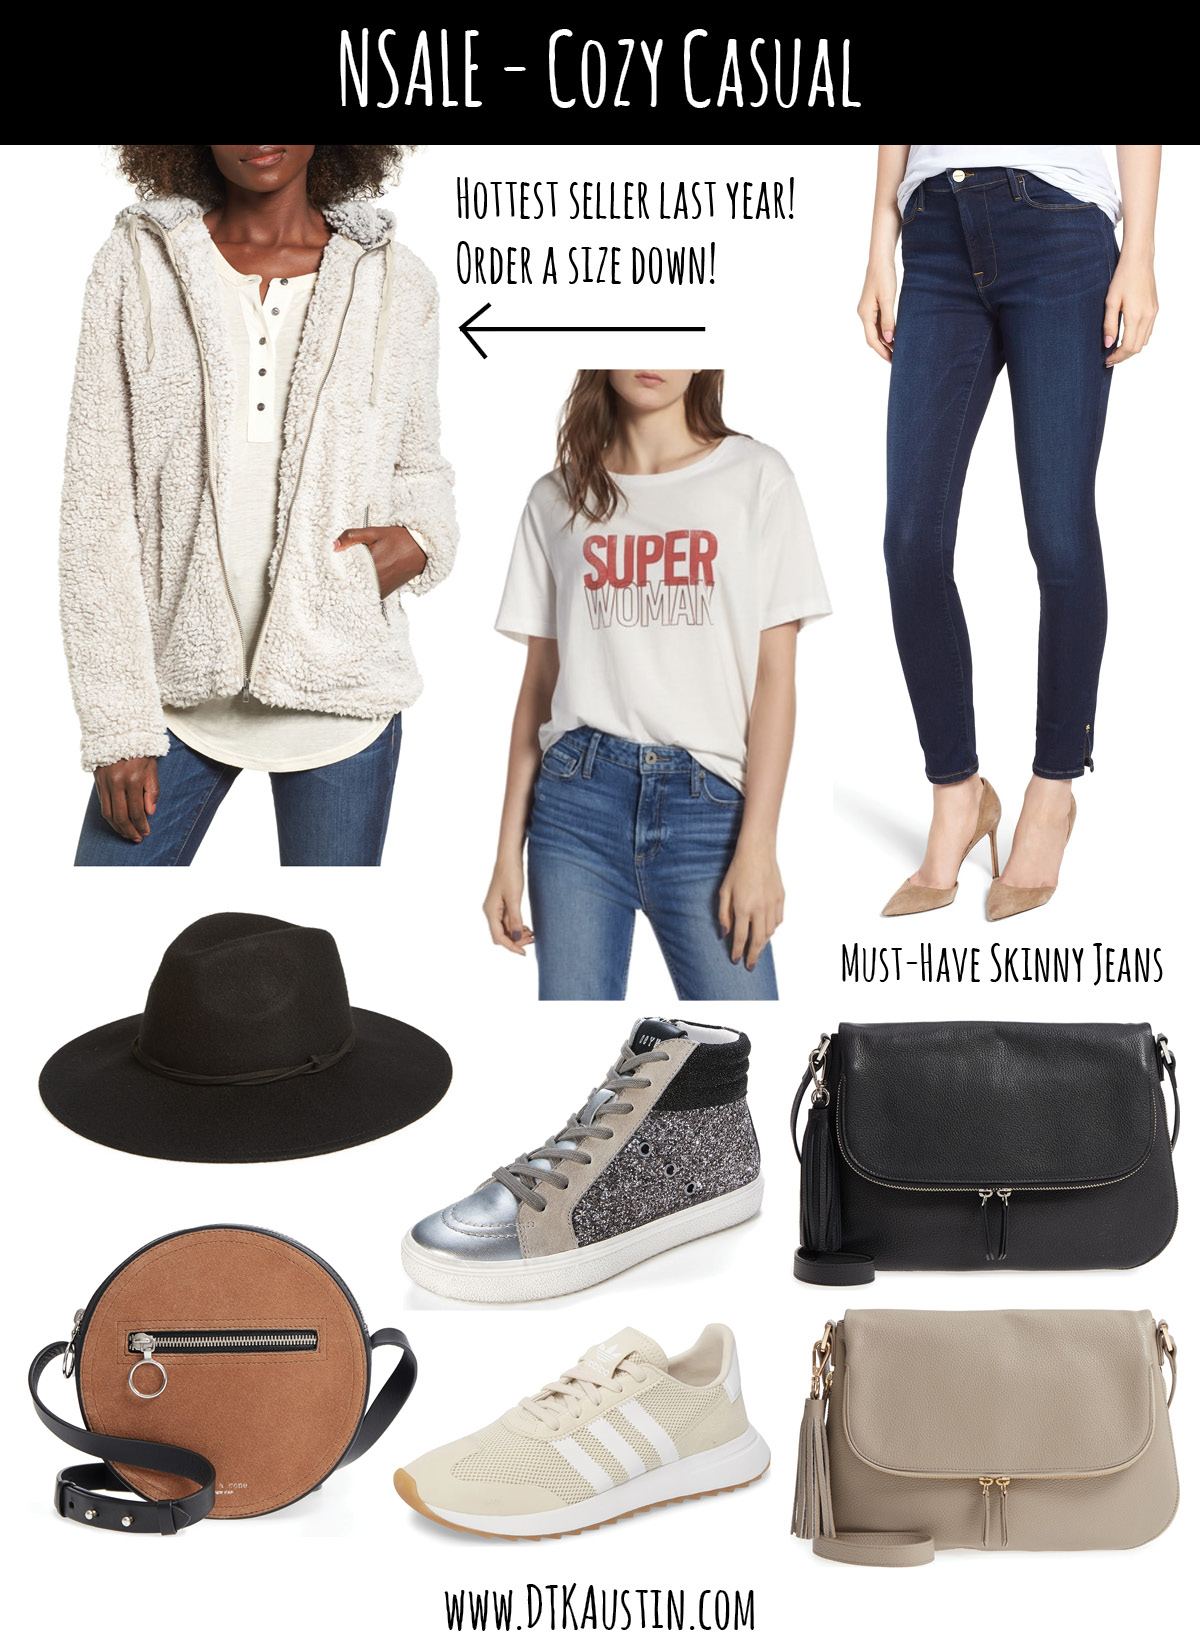 Tips on How to Shop the 2019 Nordstrom Anniversary SALE by popular Austin fashion blog, Dressed to Kill: collage image of Nordstrom anniversary sale Thready & Supply Wubby Fleece, Super Woman Tee, FRAME Skinny Jeans Treasure & Bond Felt Hat, Steve Madden Glitter Sneaker, Leather Crossbody, Rag & Bone Crossbody and Adidas Sneakers